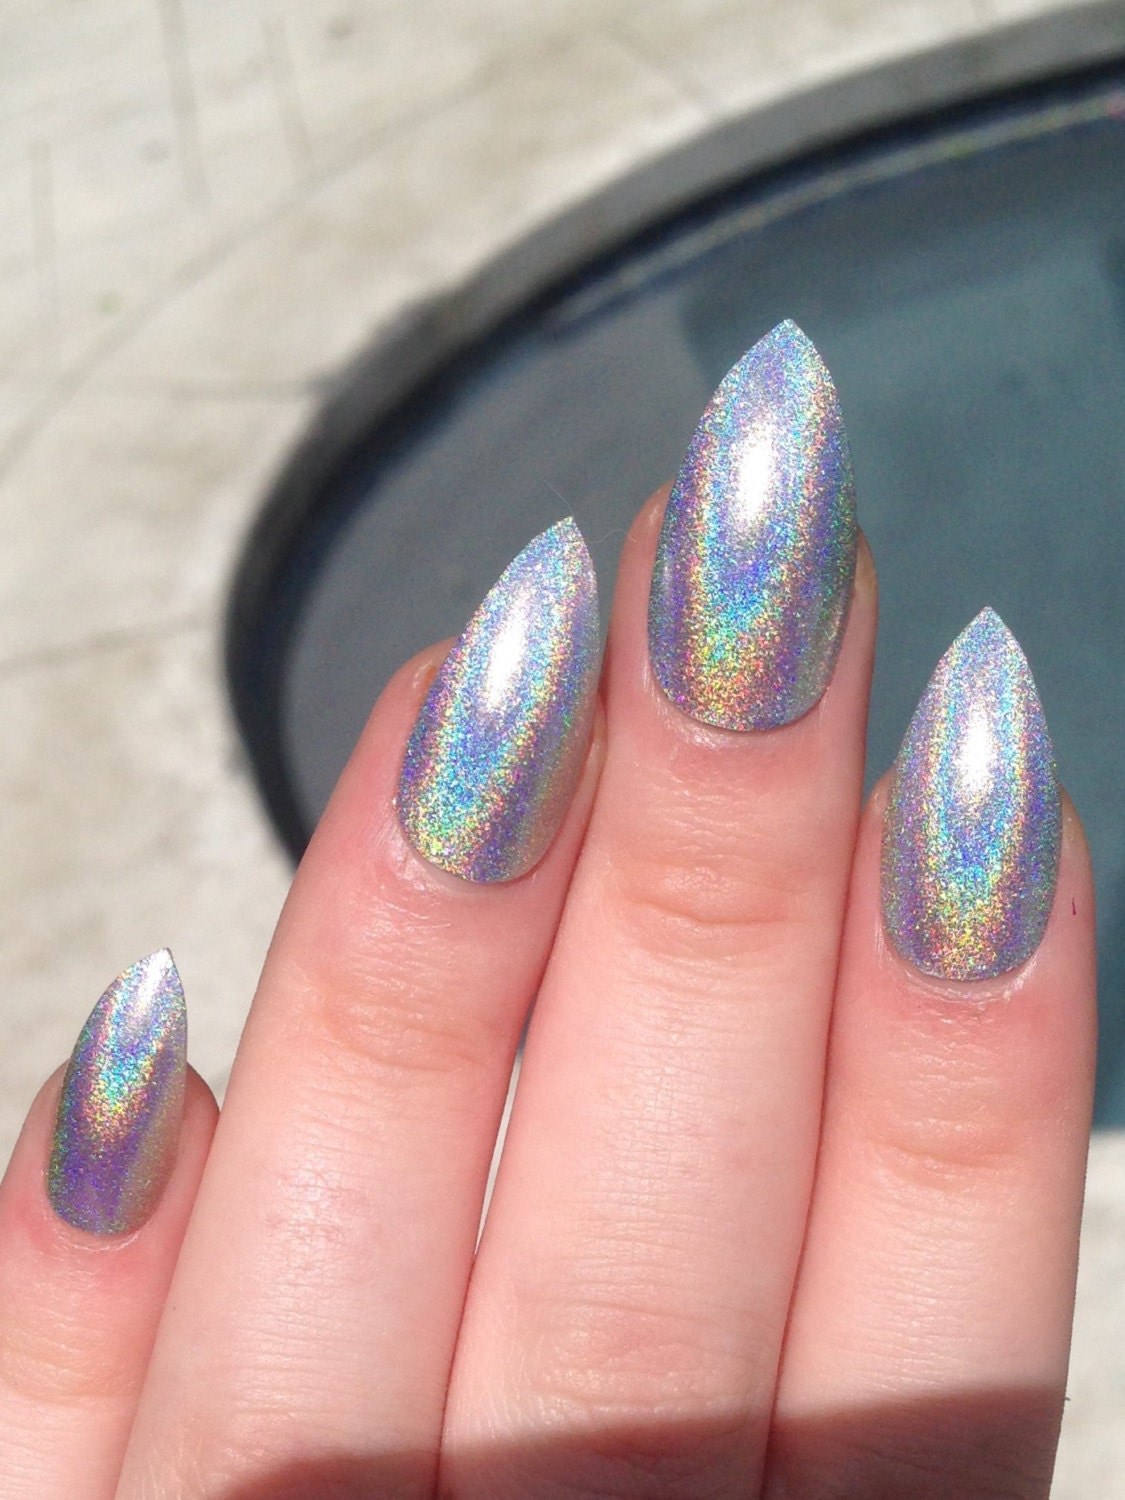 Stiletto Nails Fake Nails Matte Nails Blue Press On Nails: Fake Nails Stiletto Nails Holographic Nails Holo